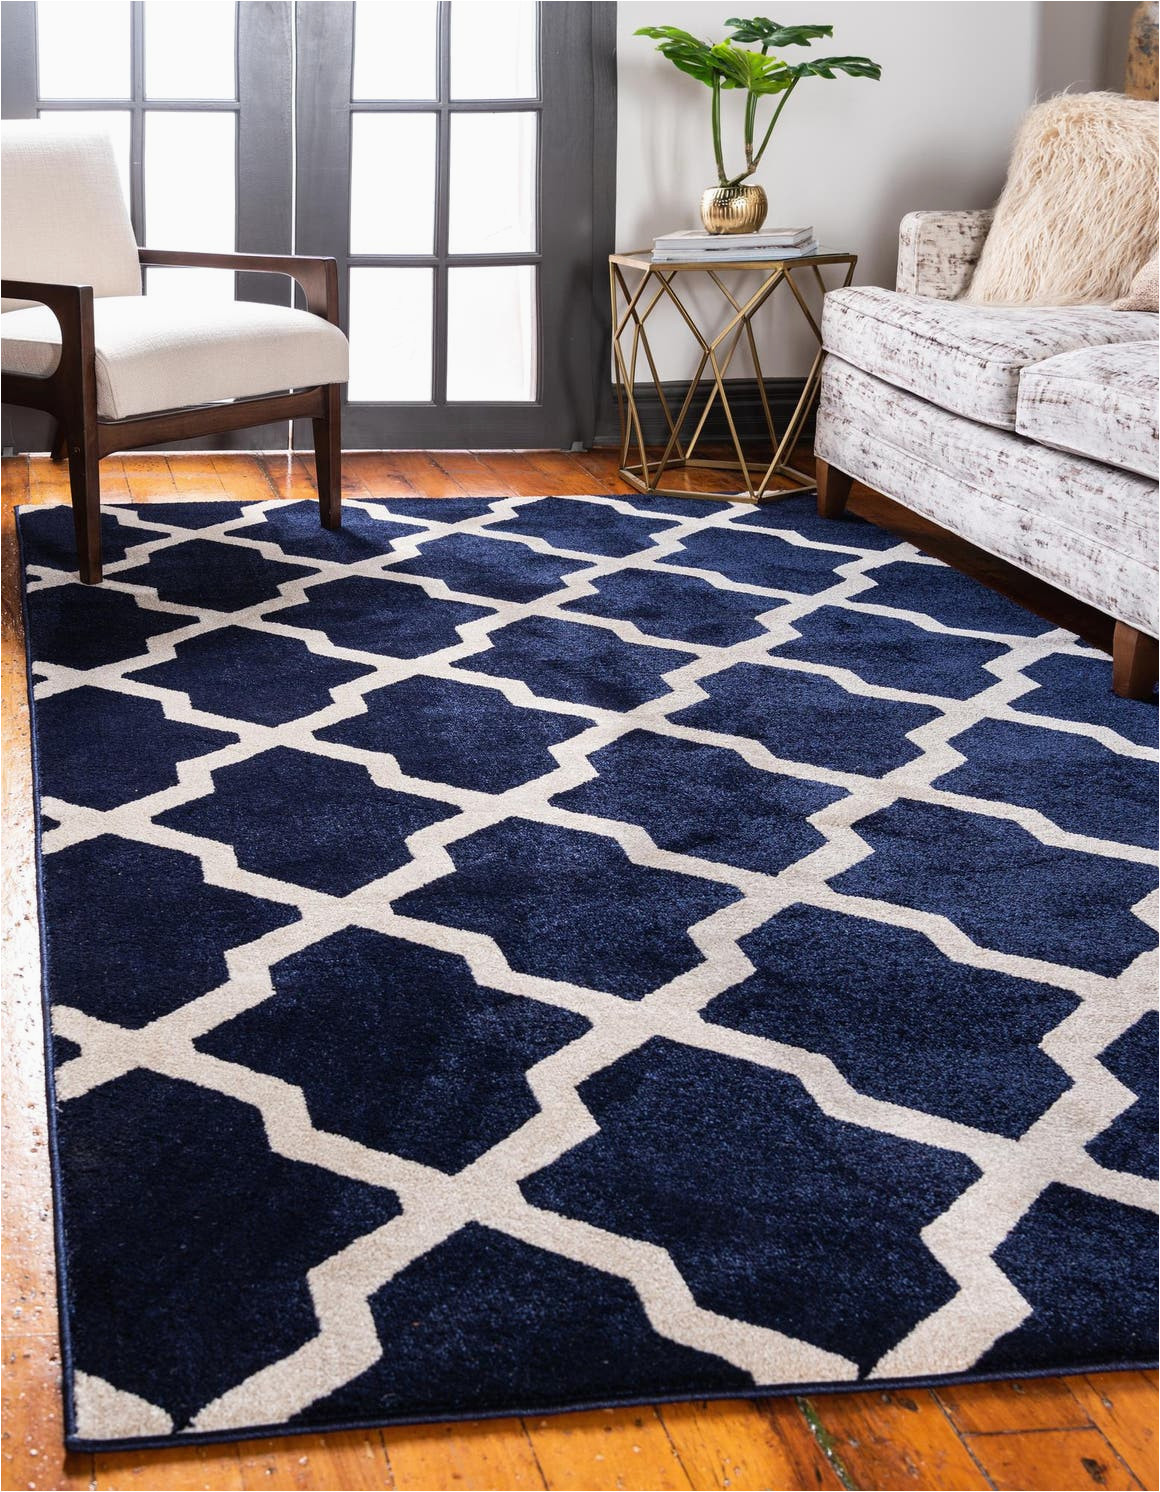 navy blue 5x8 lattice area rug 6232810